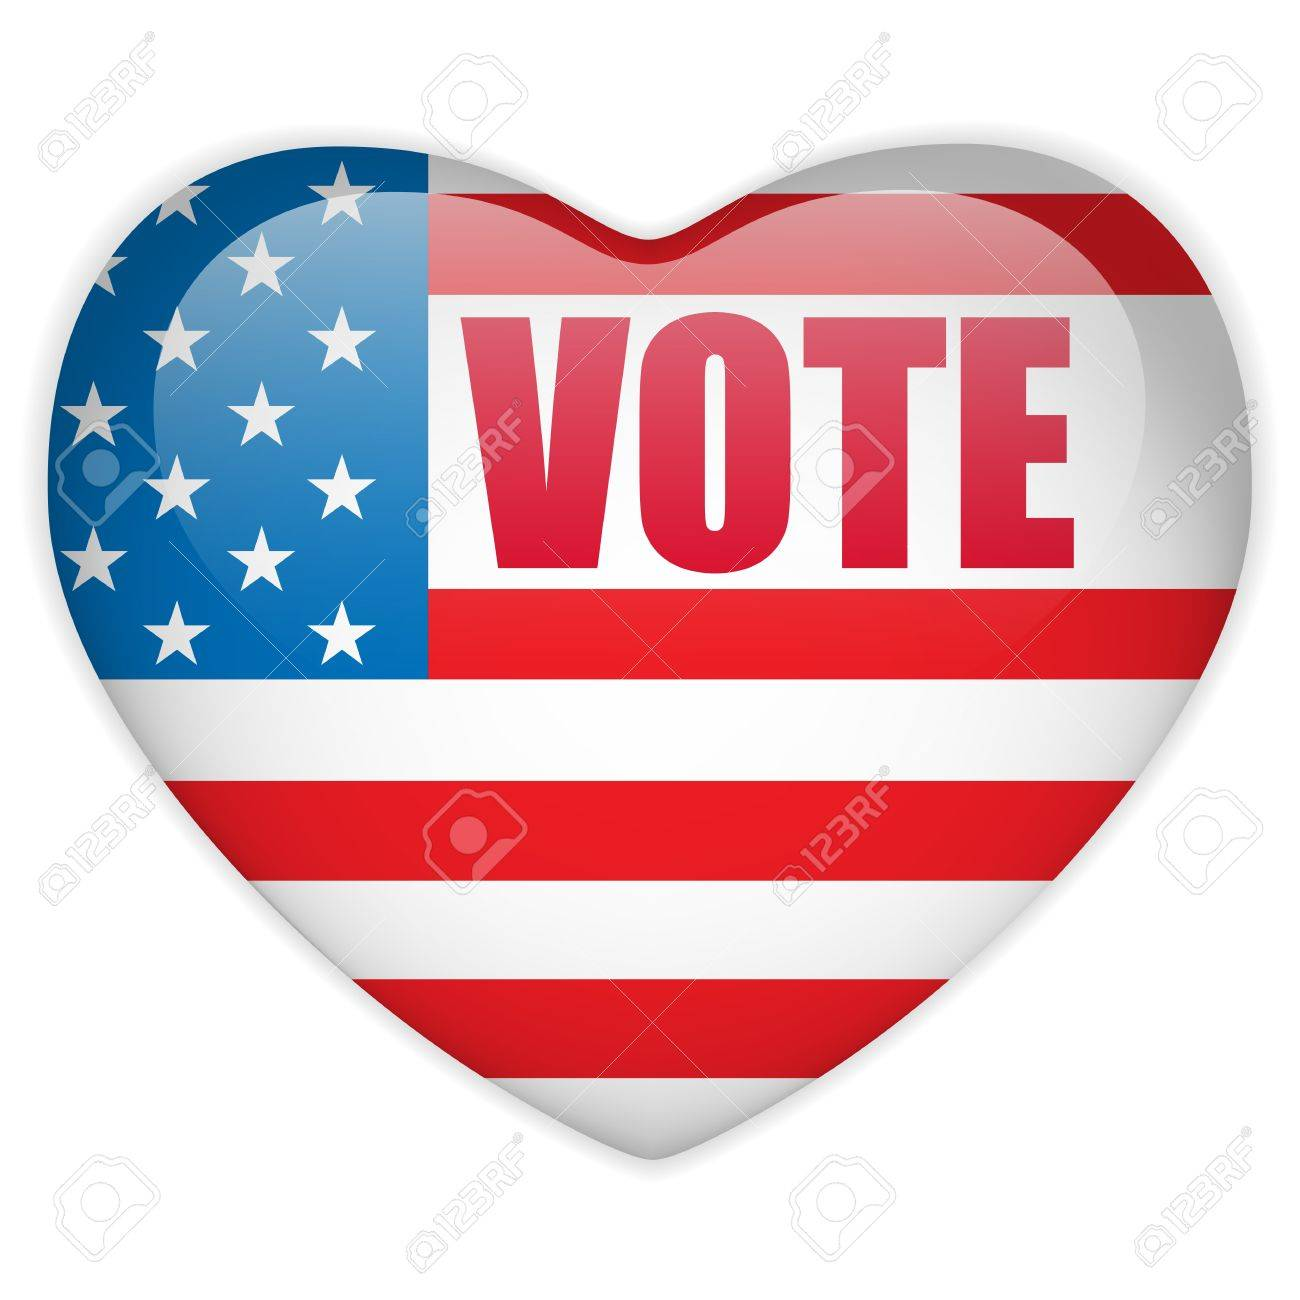 United States Election Vote Heart Button. Stock Vector - 14647990